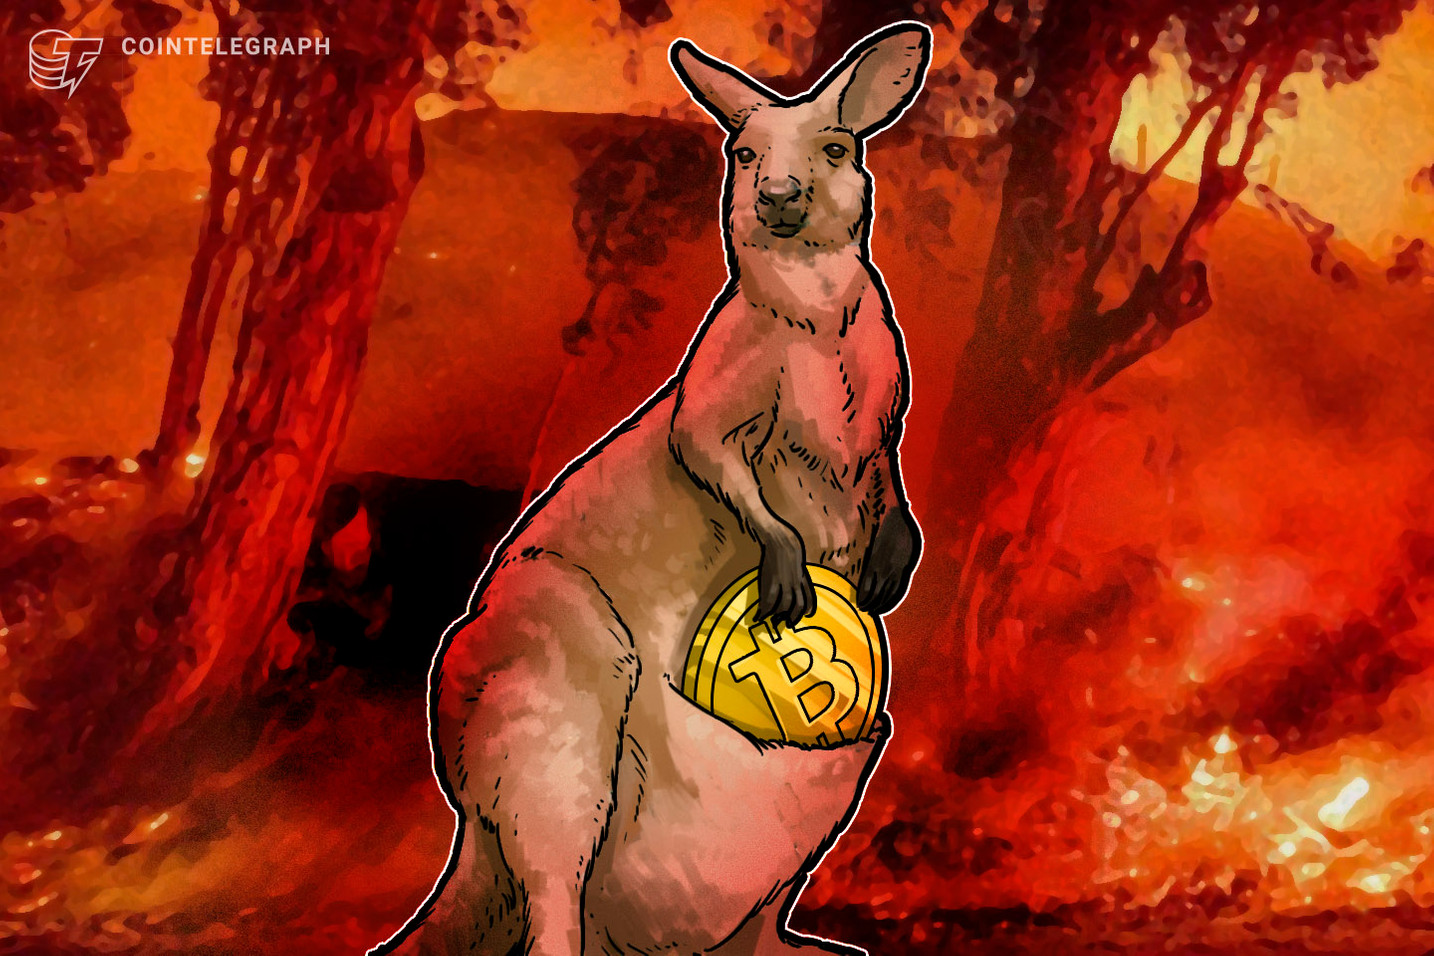 As Australia Burns, Cointelegraph and Oxygen Seven Raise Relief Funds